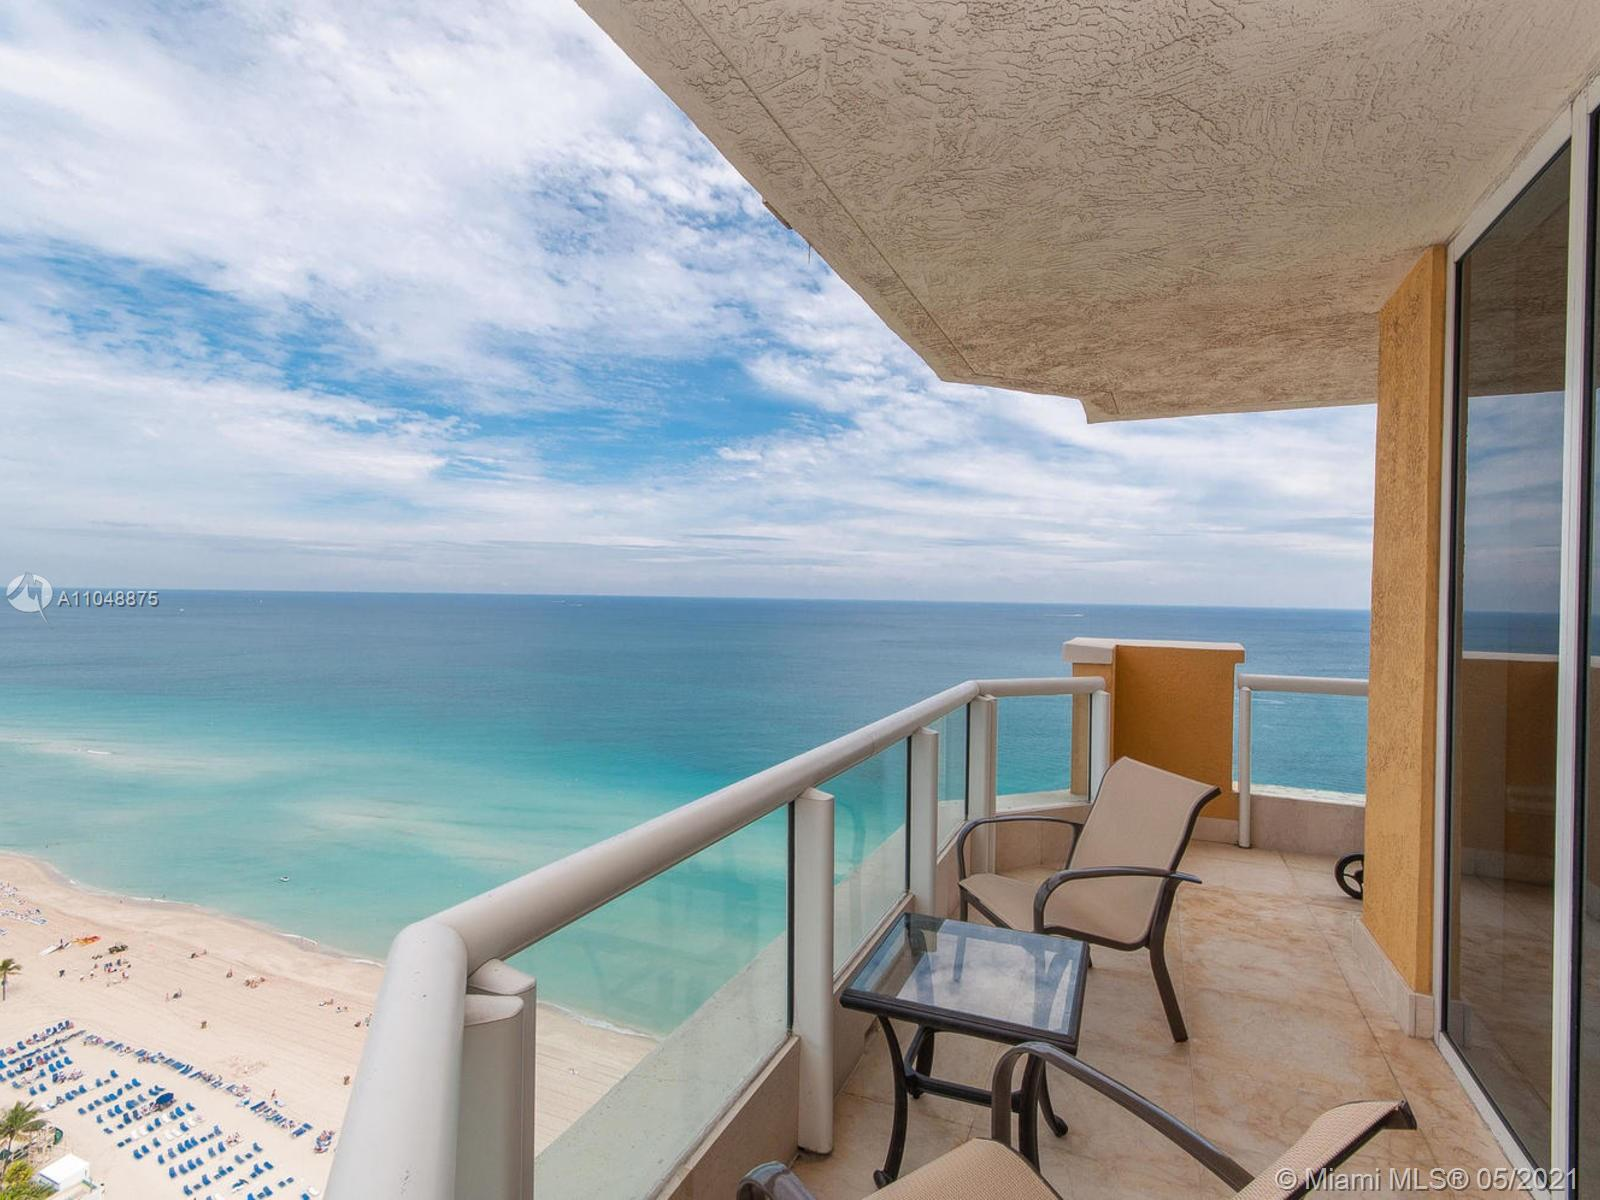 SPACIOUS CORNER UNIT IN DESIRABLE ACQUALINA, DIRECT OCEAN VIEW AND INTRACOASTAL VIEW!!! 5 STARS AMENITIES, GREAT LOCATION!!!